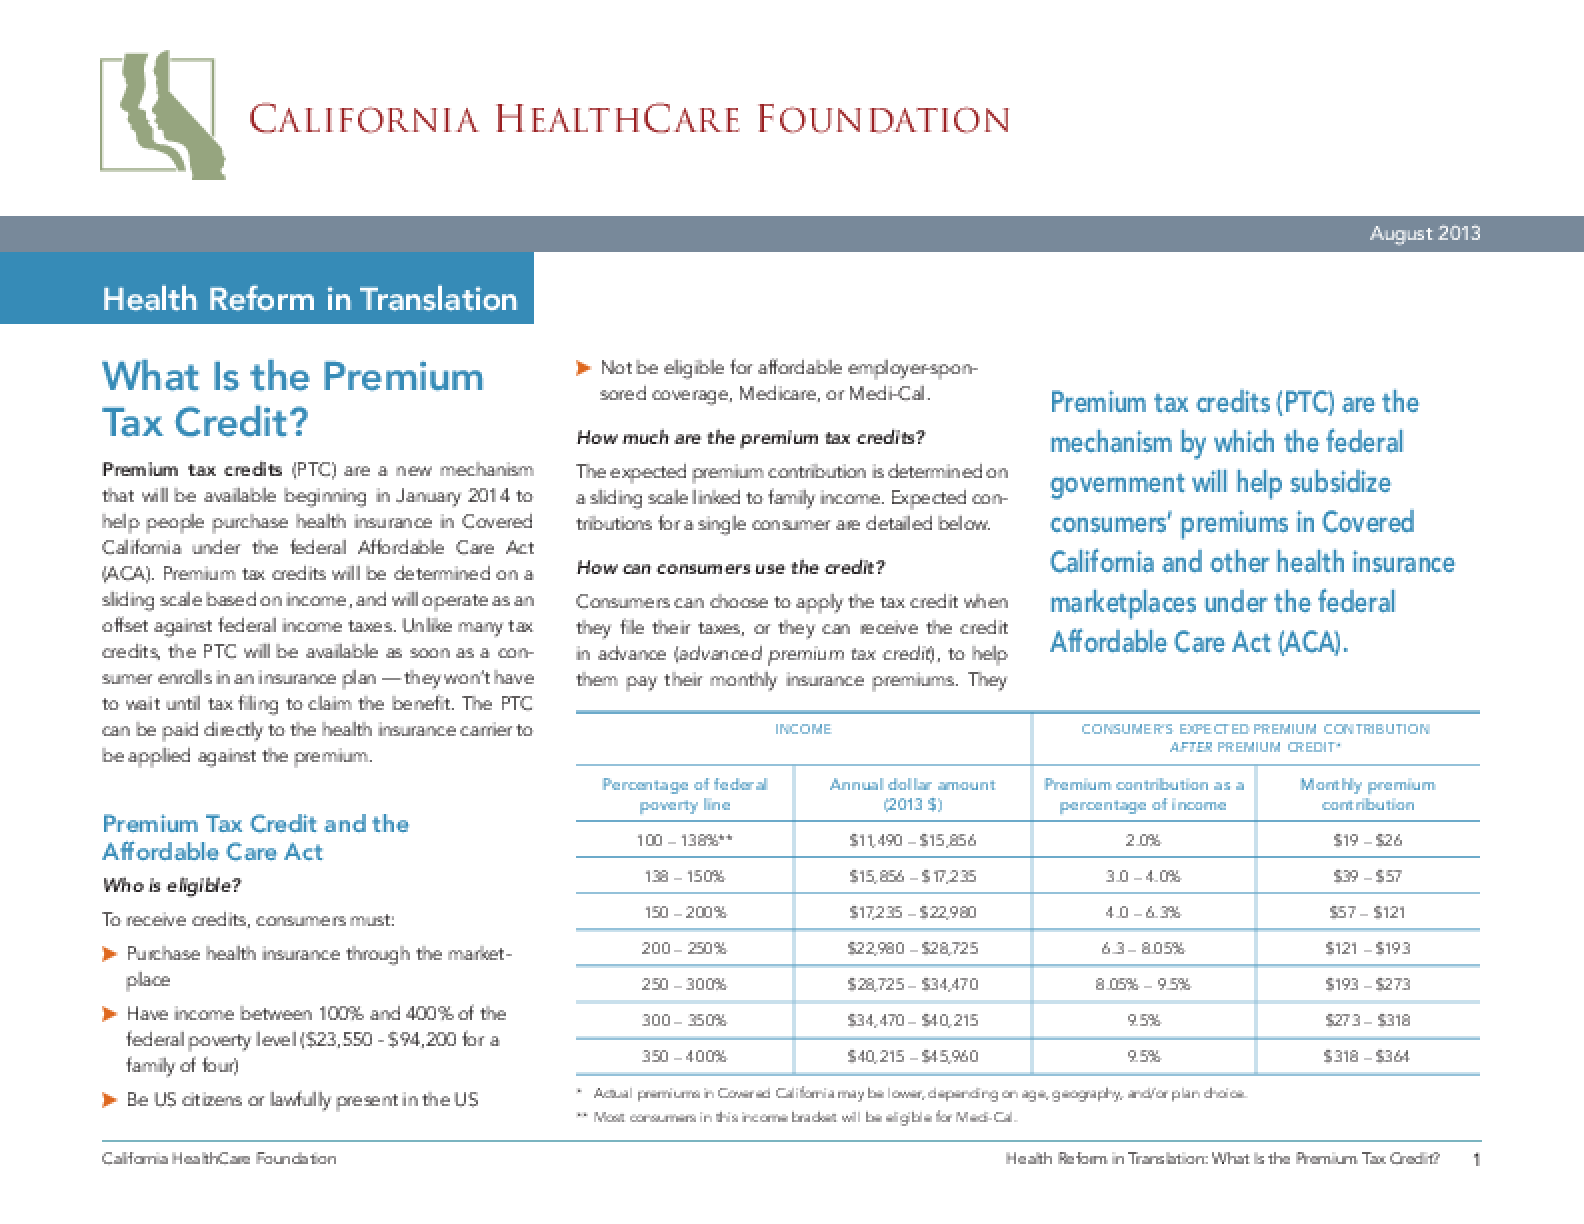 Health Reform in Translation: What is the Premium Tax Credit?